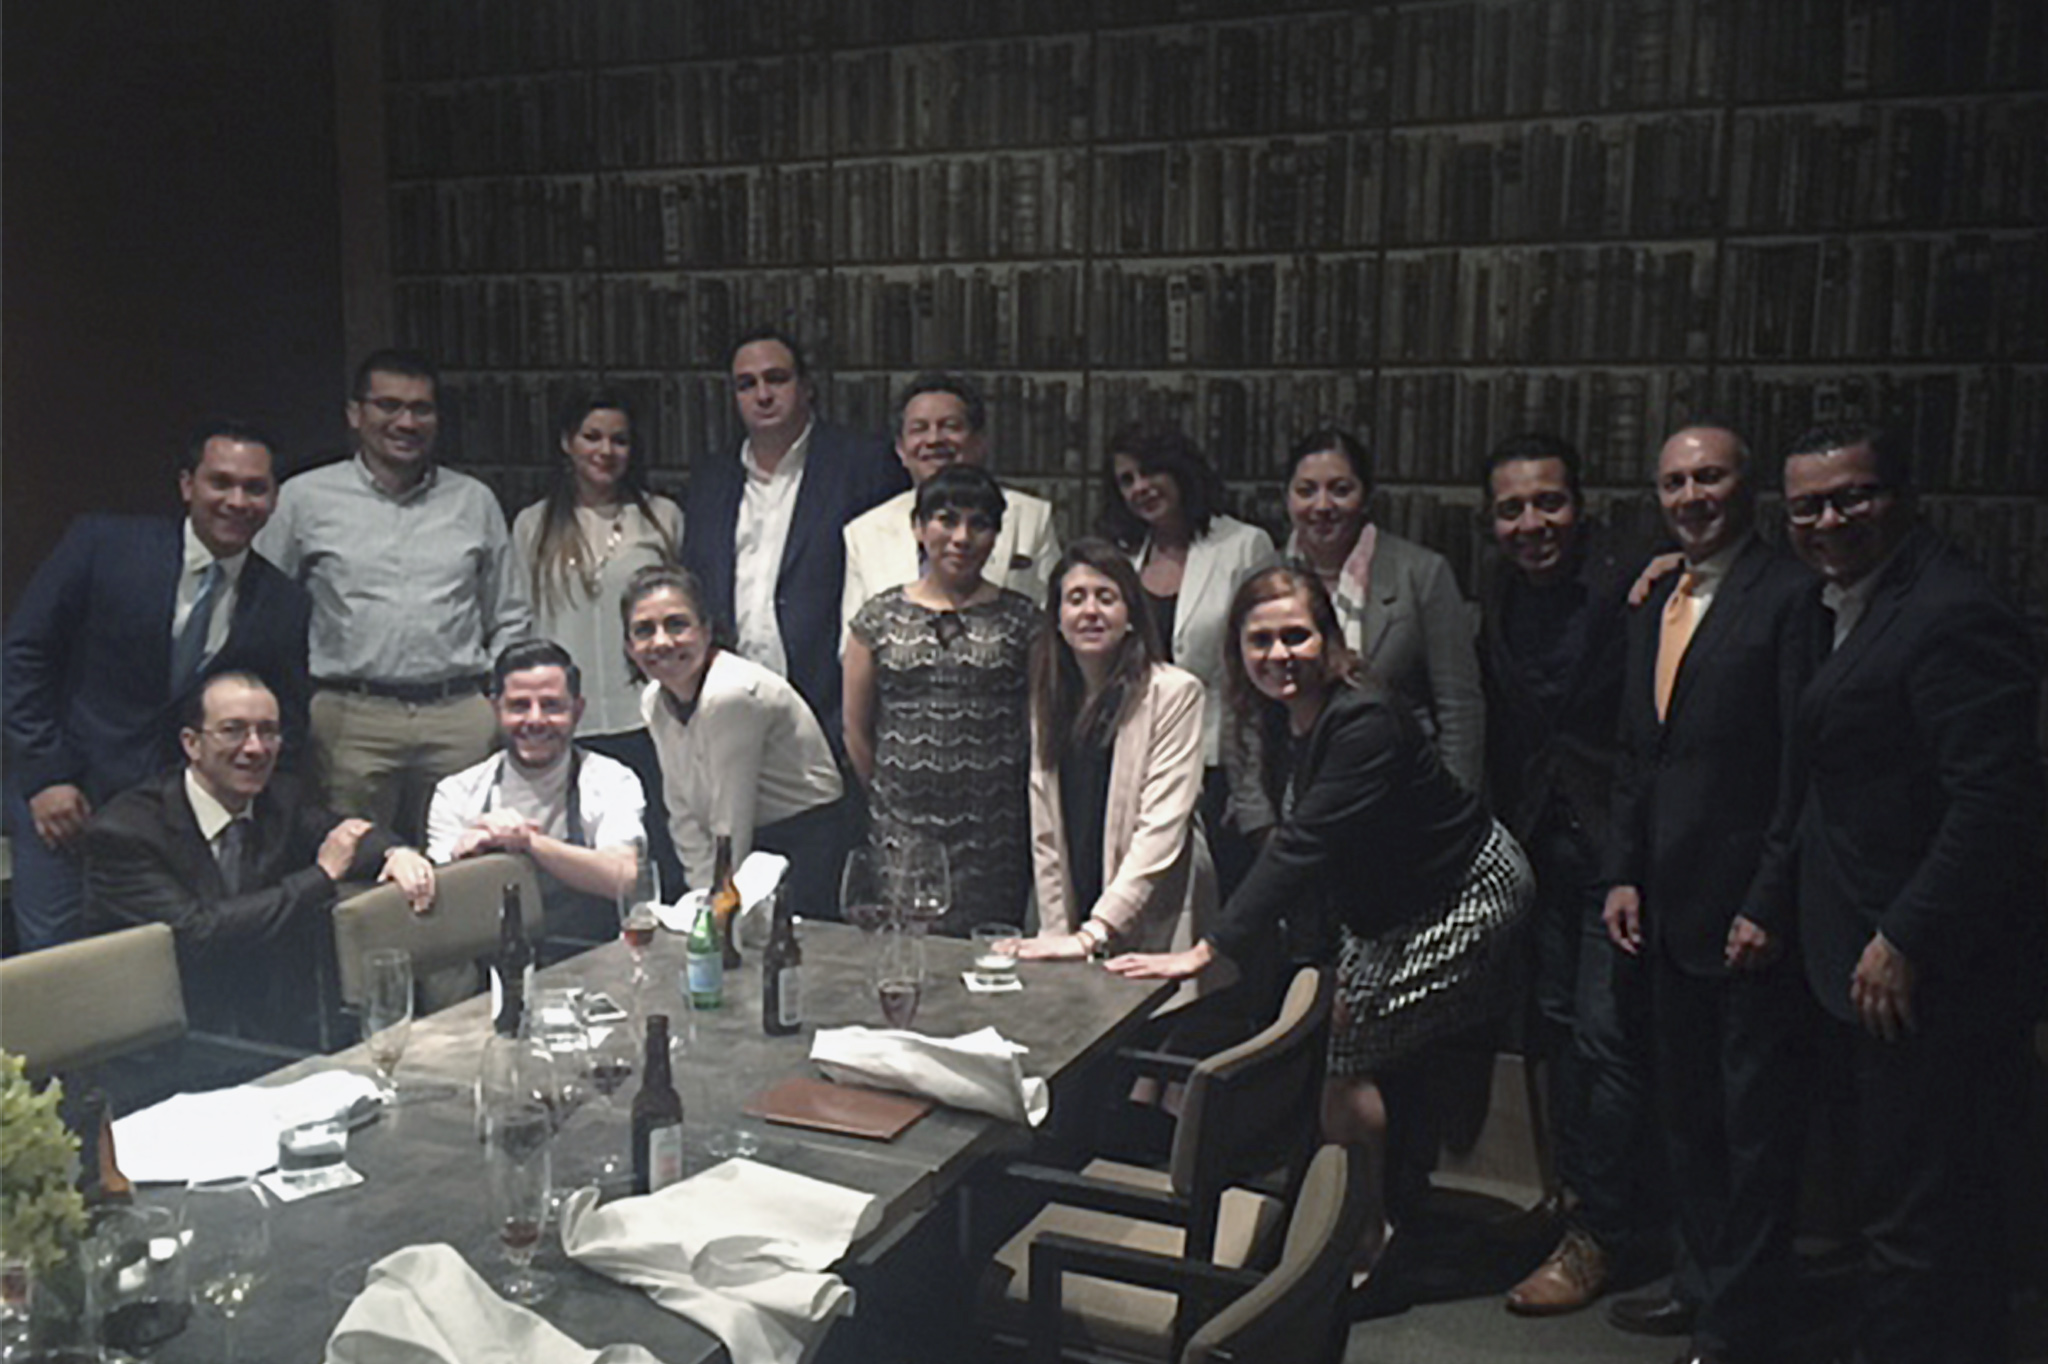 Our oenologist of La Rioja travels to Mexico